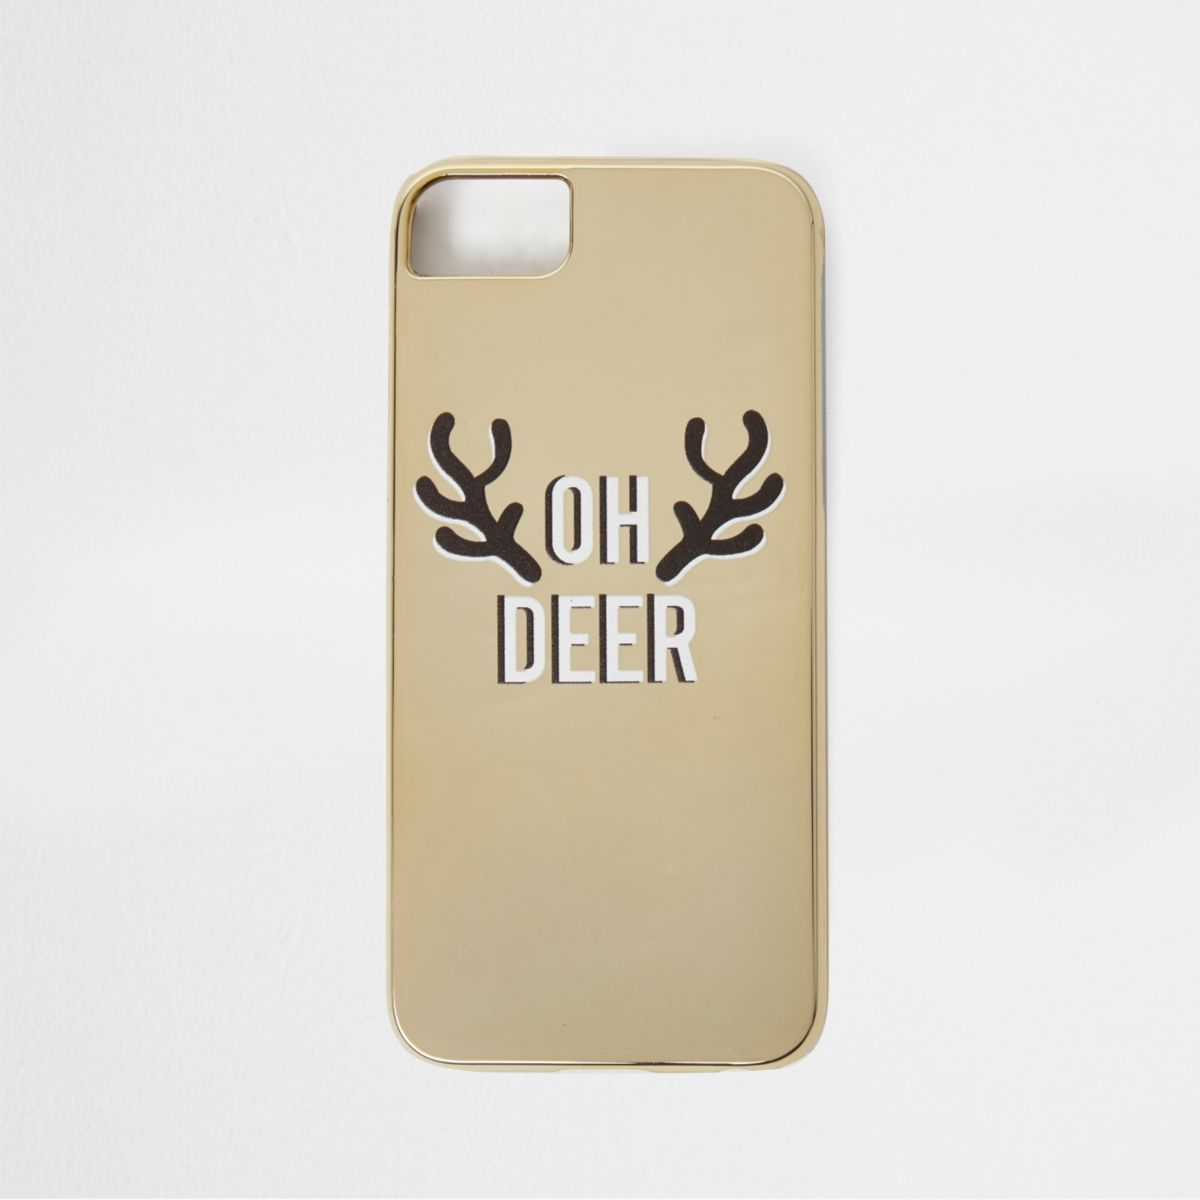 Gold 'oh deer' Christmas phone case